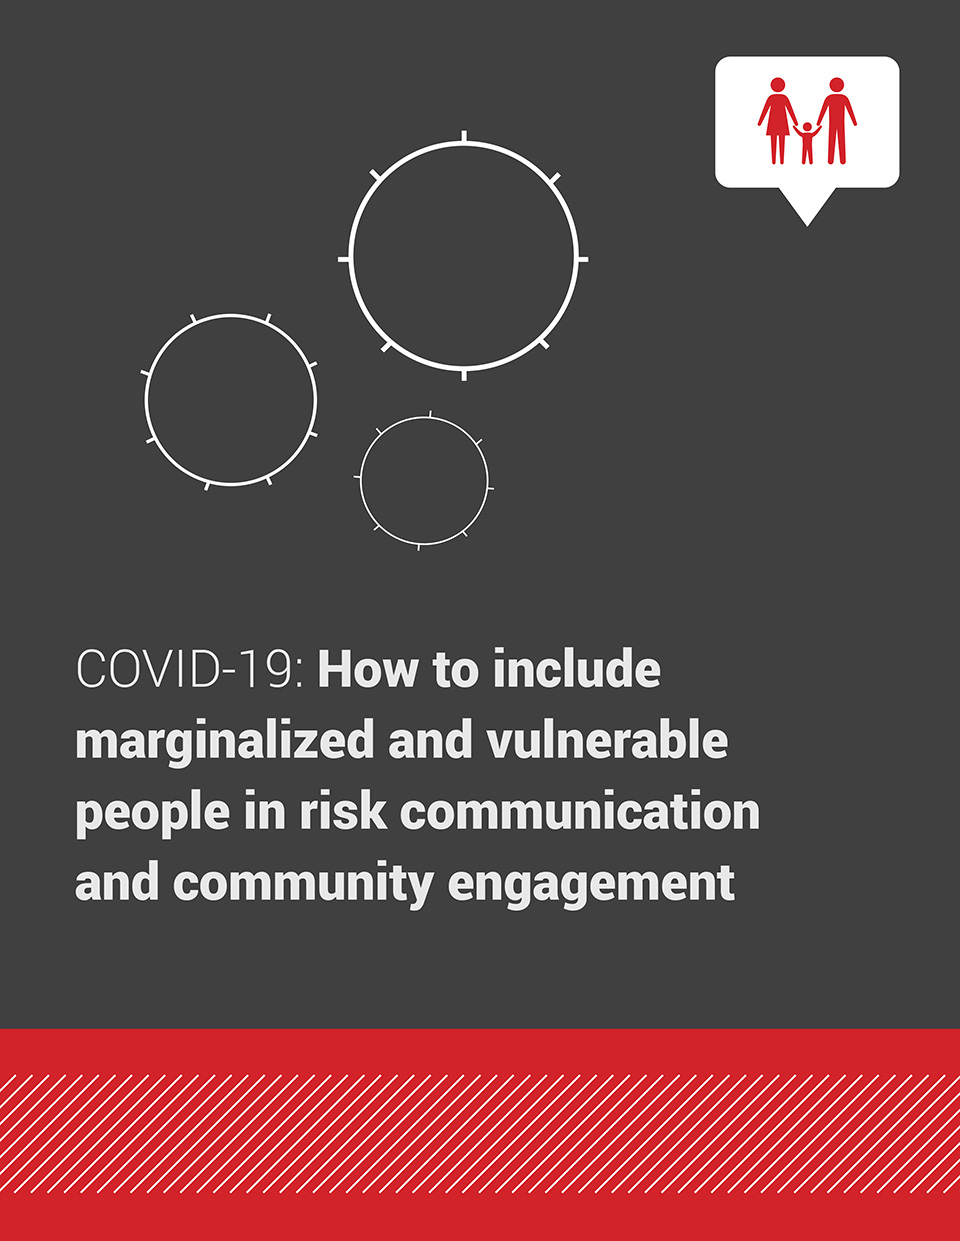 COVID-19: How to include  marginalized and vulnerable people in risk communication and community engagement